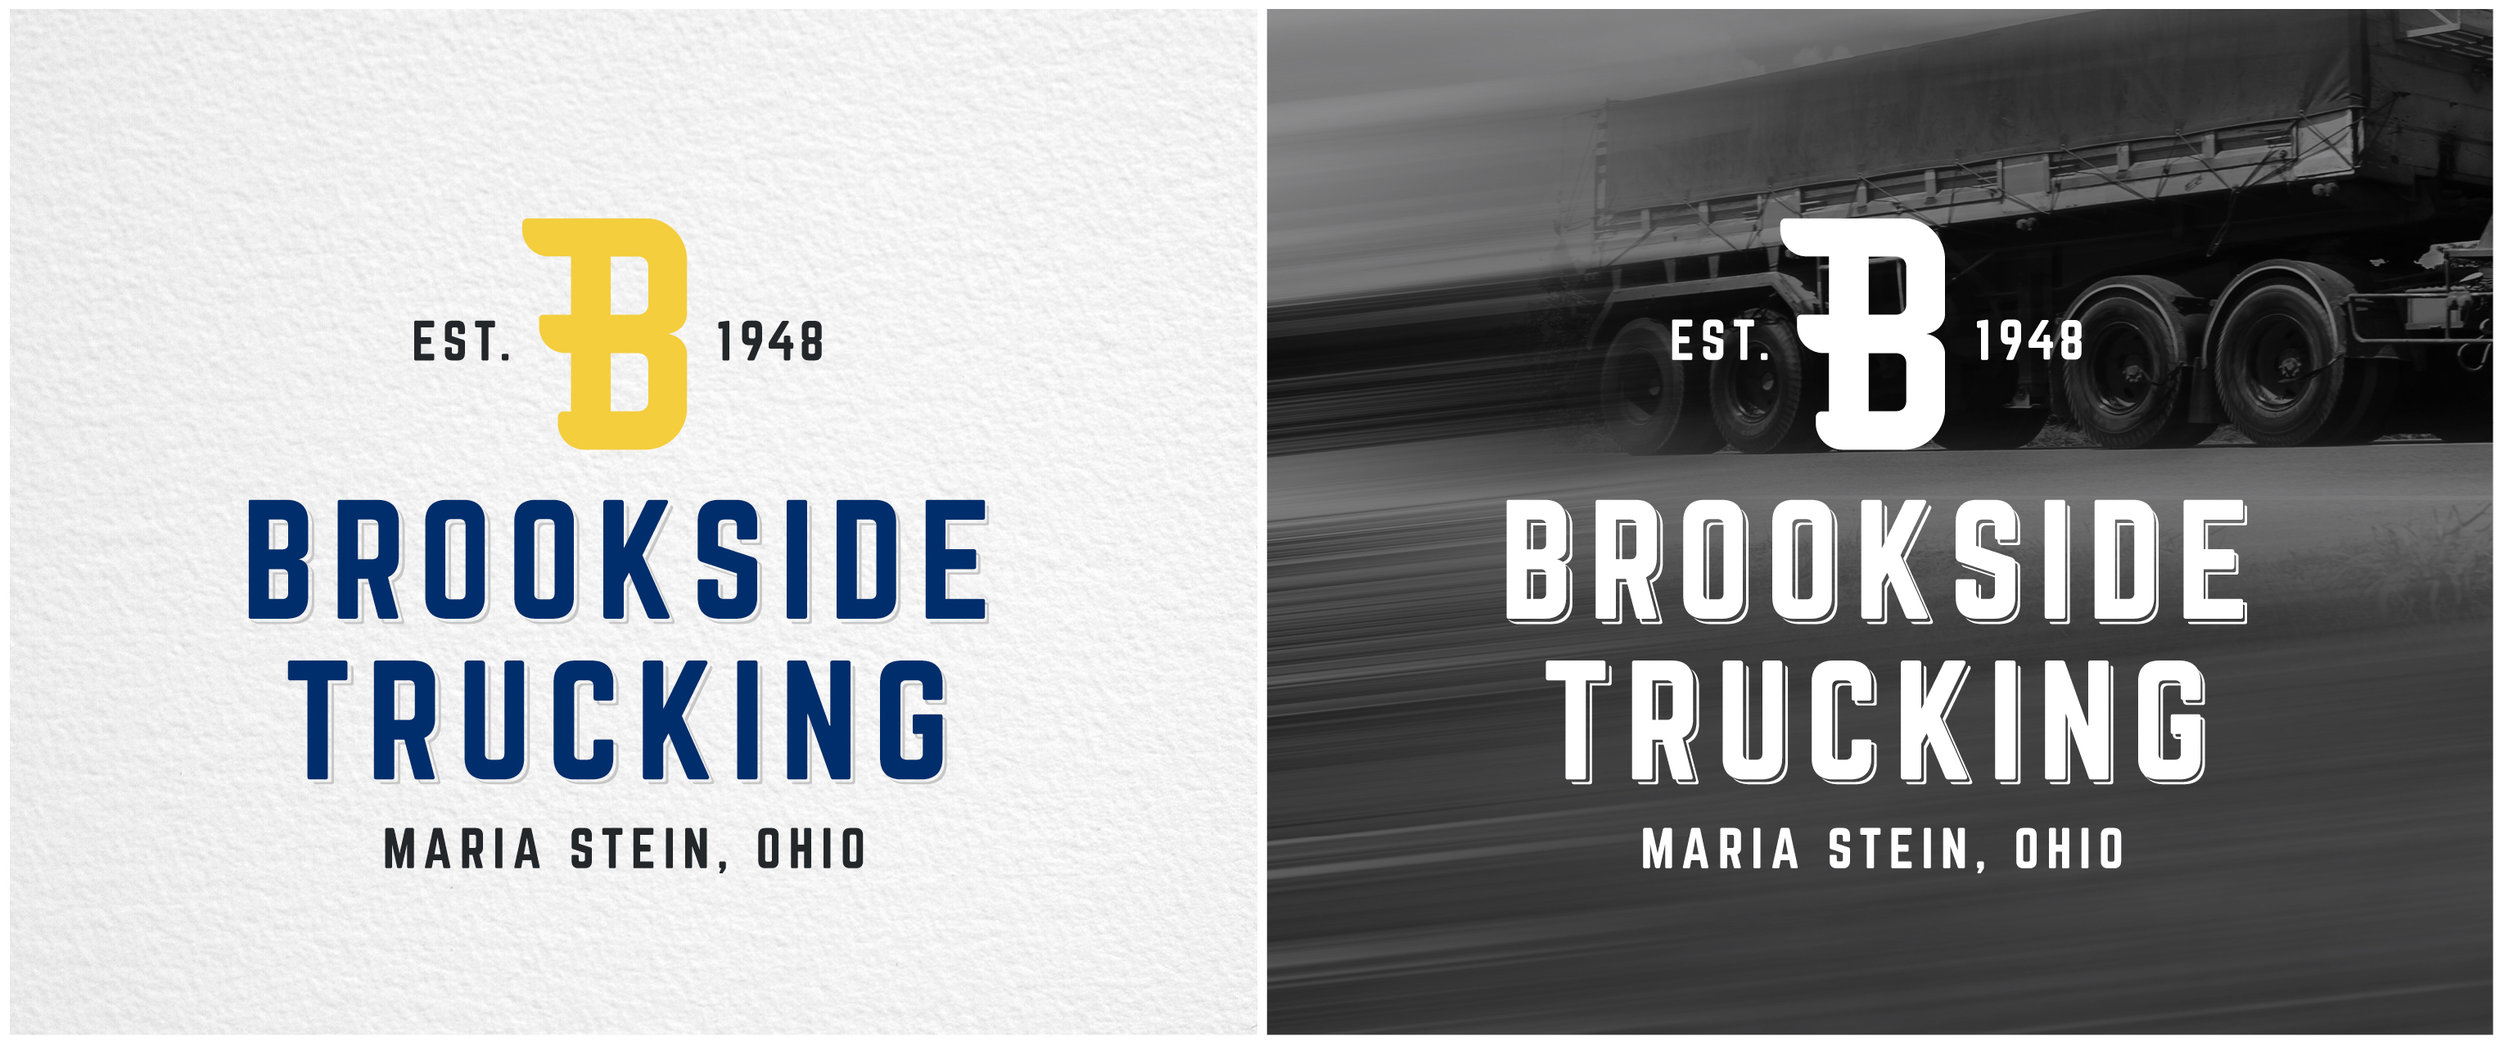 Brookside Trucking.jpg